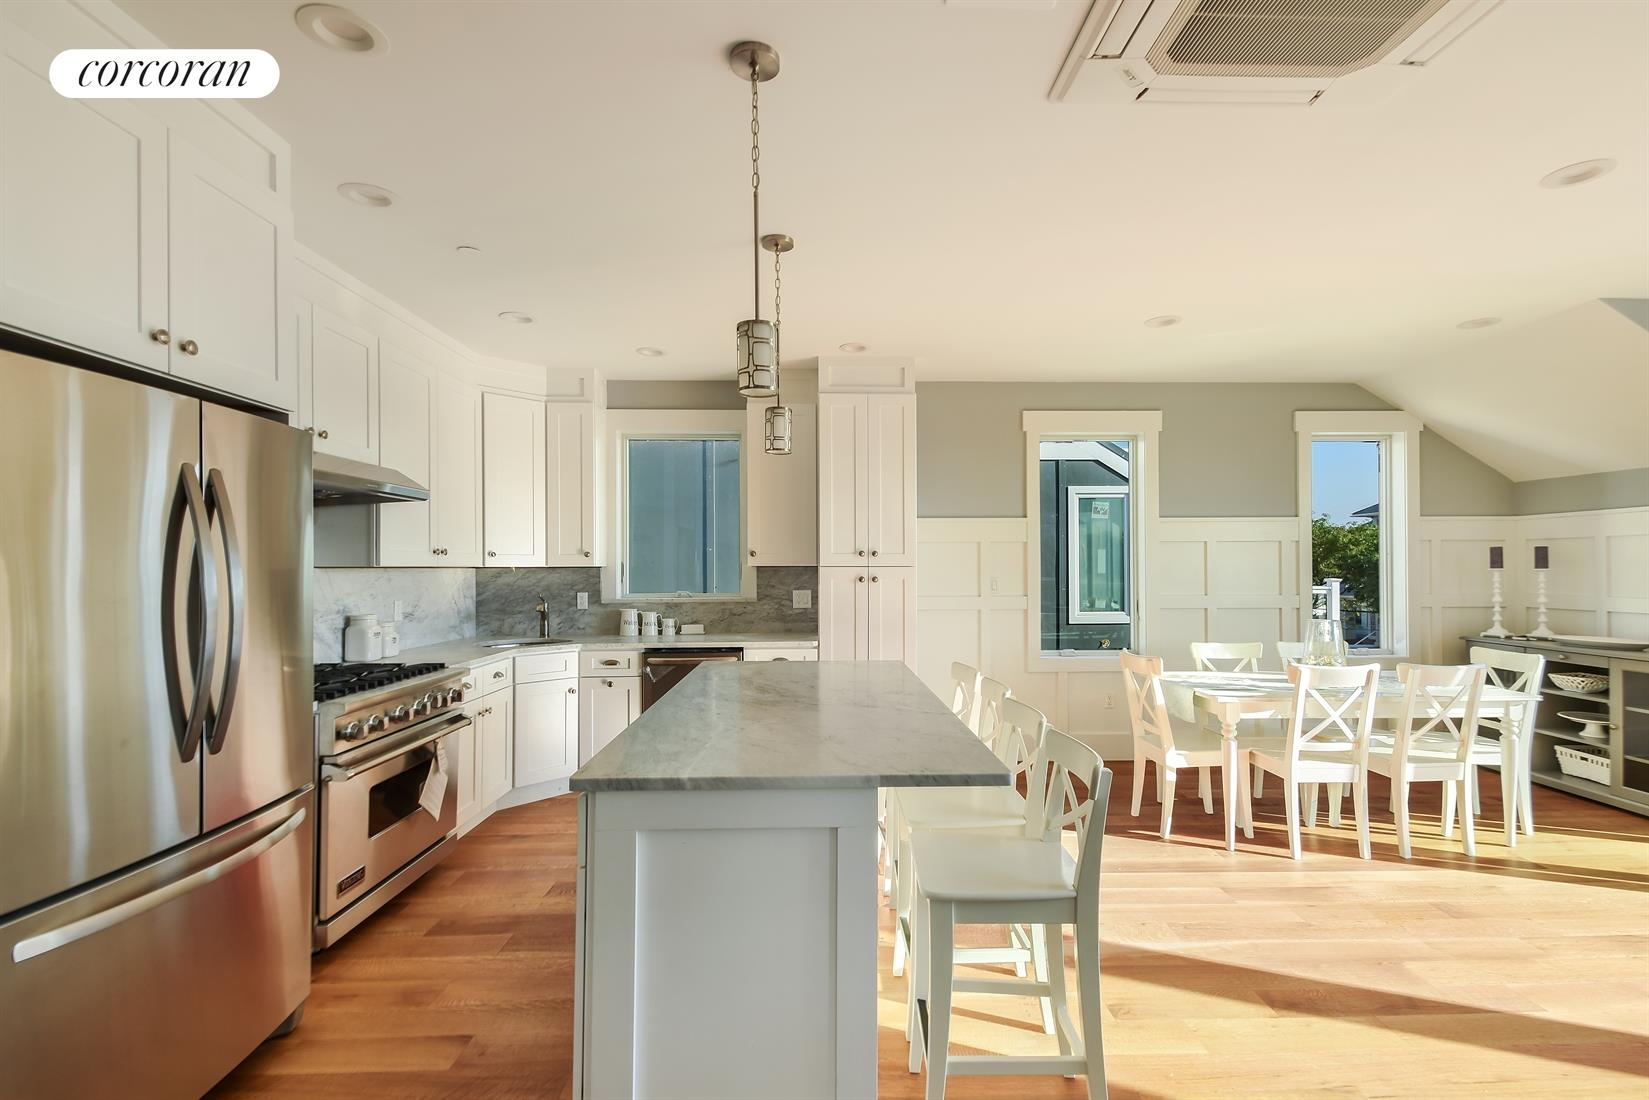 180 Beach 127th Street, B, Kitchen / Dining Room